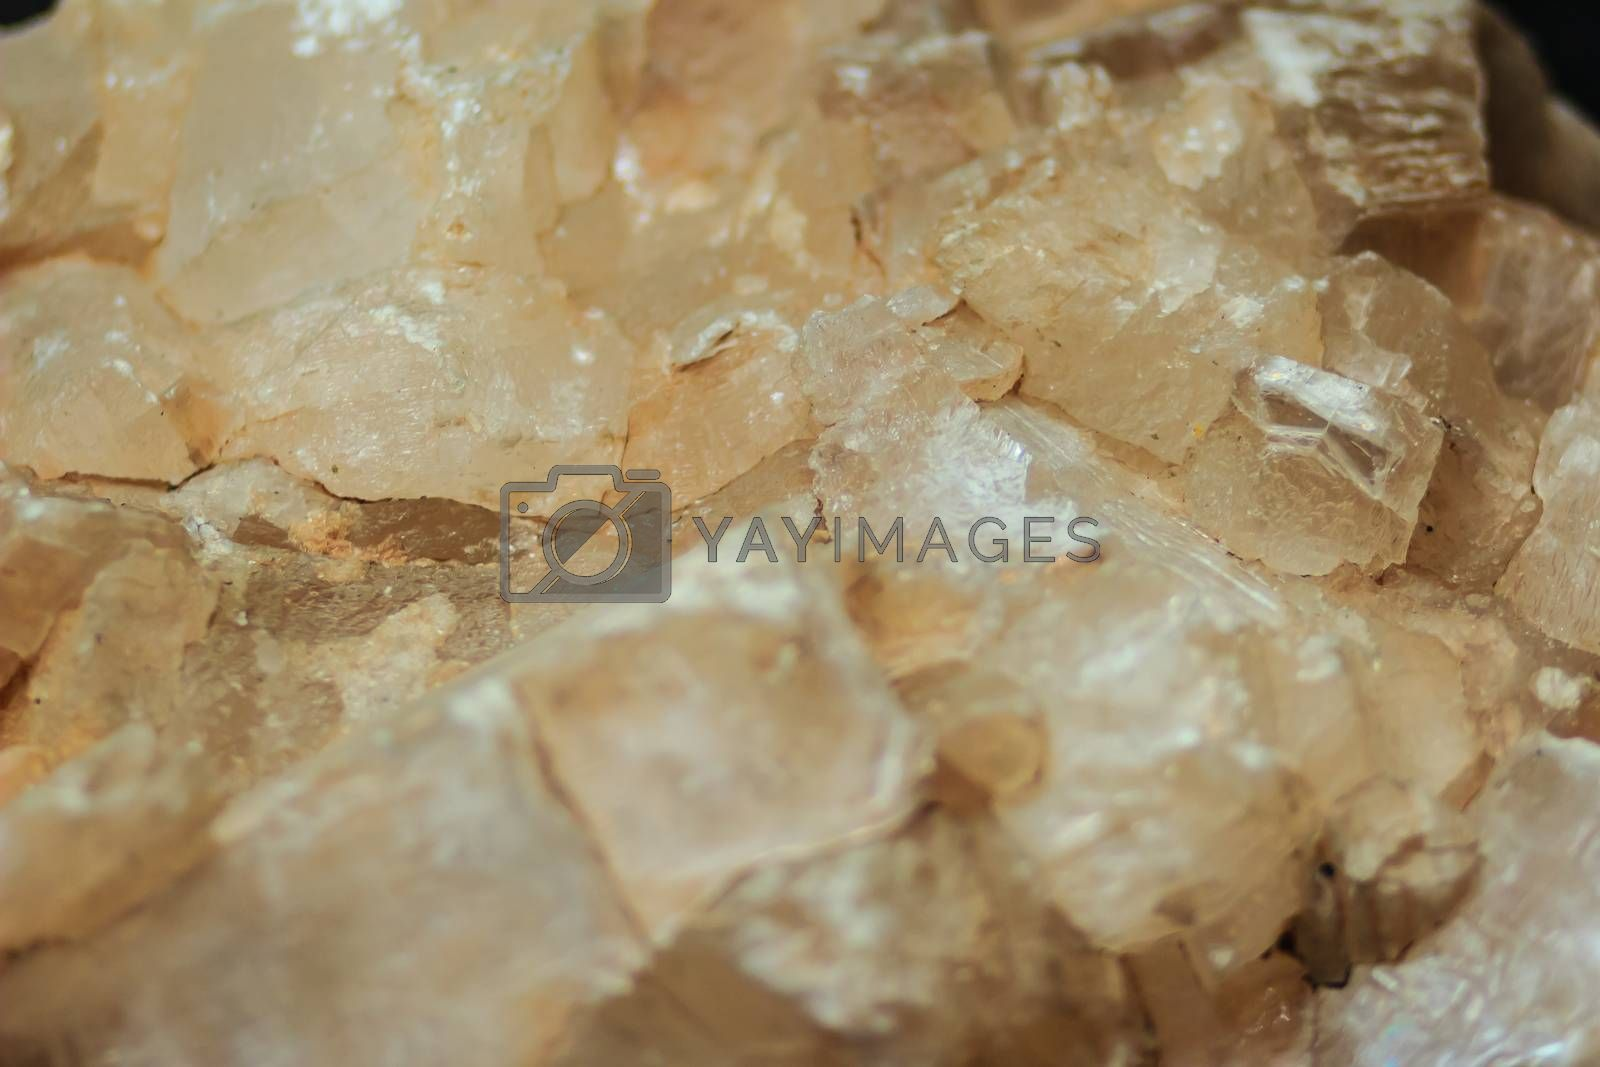 Gypsum lamellar habit or lamellar crystals of gypsum rock specimen from mining and quarrying industries. Gypsum is a soft sulfate mineral composed of calcium sulfate dihydrate.